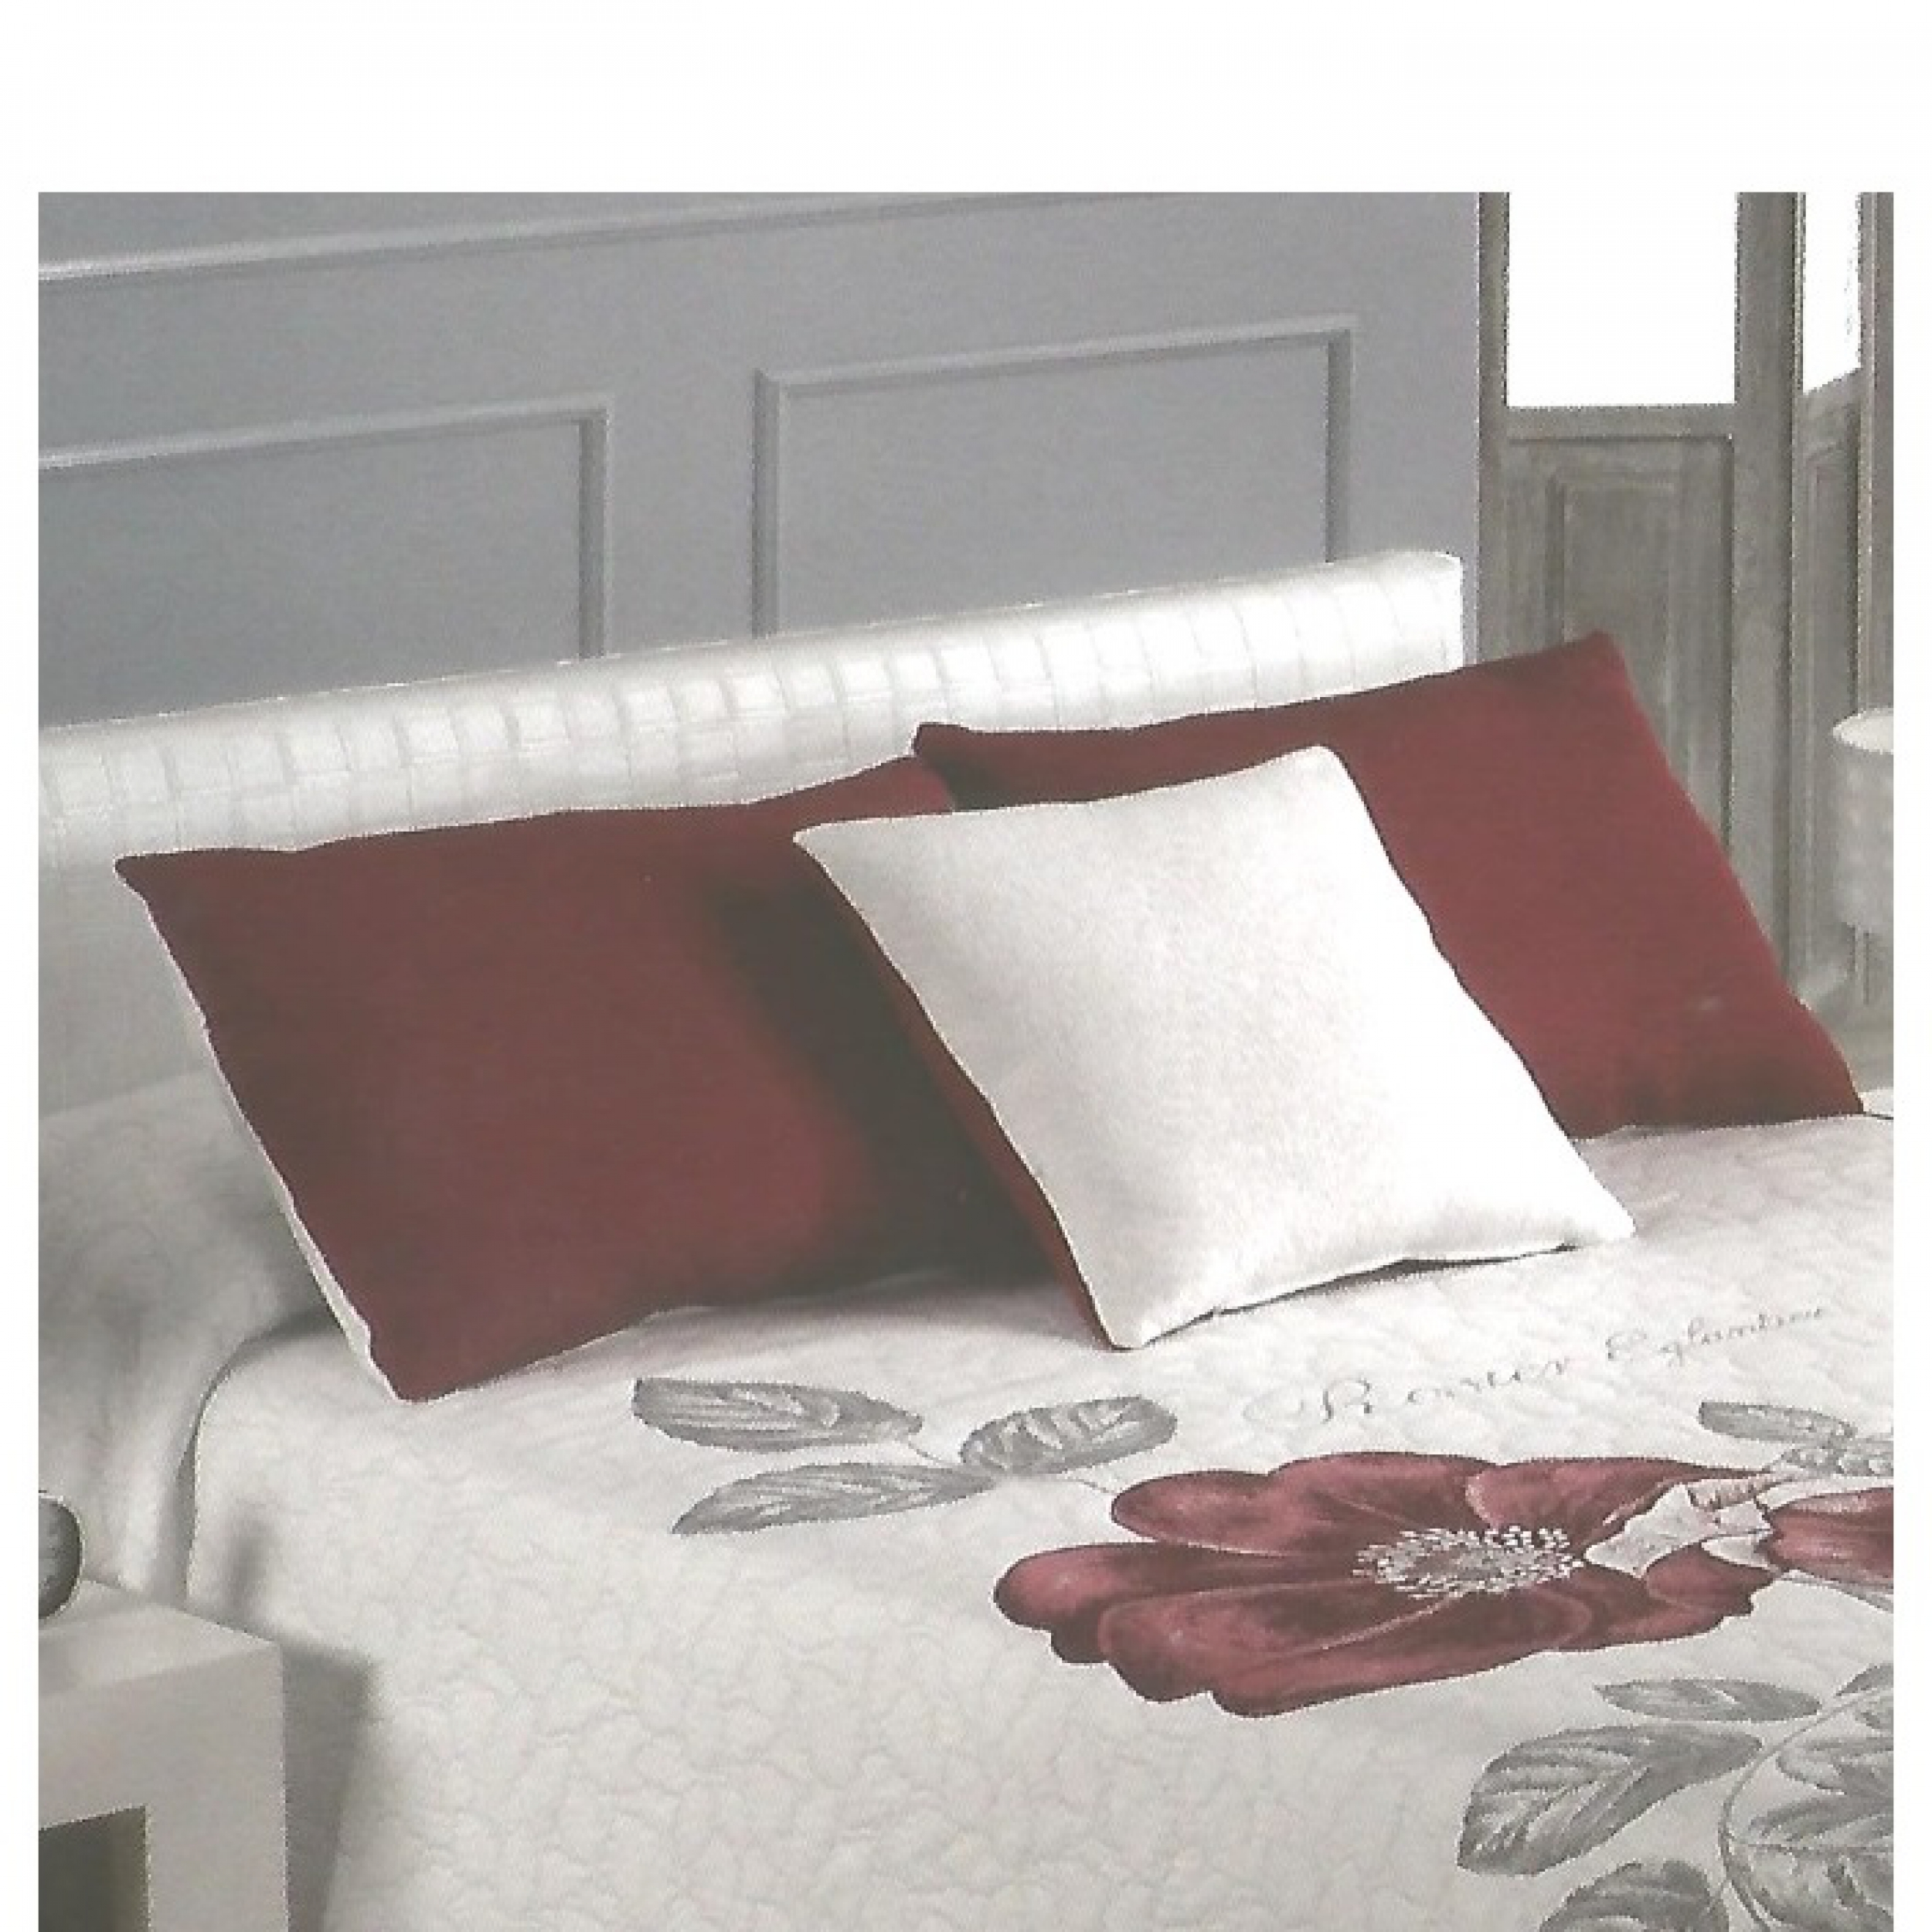 coussin bordeaux assorti au couvre lit rose l 39 atelier de la toile. Black Bedroom Furniture Sets. Home Design Ideas